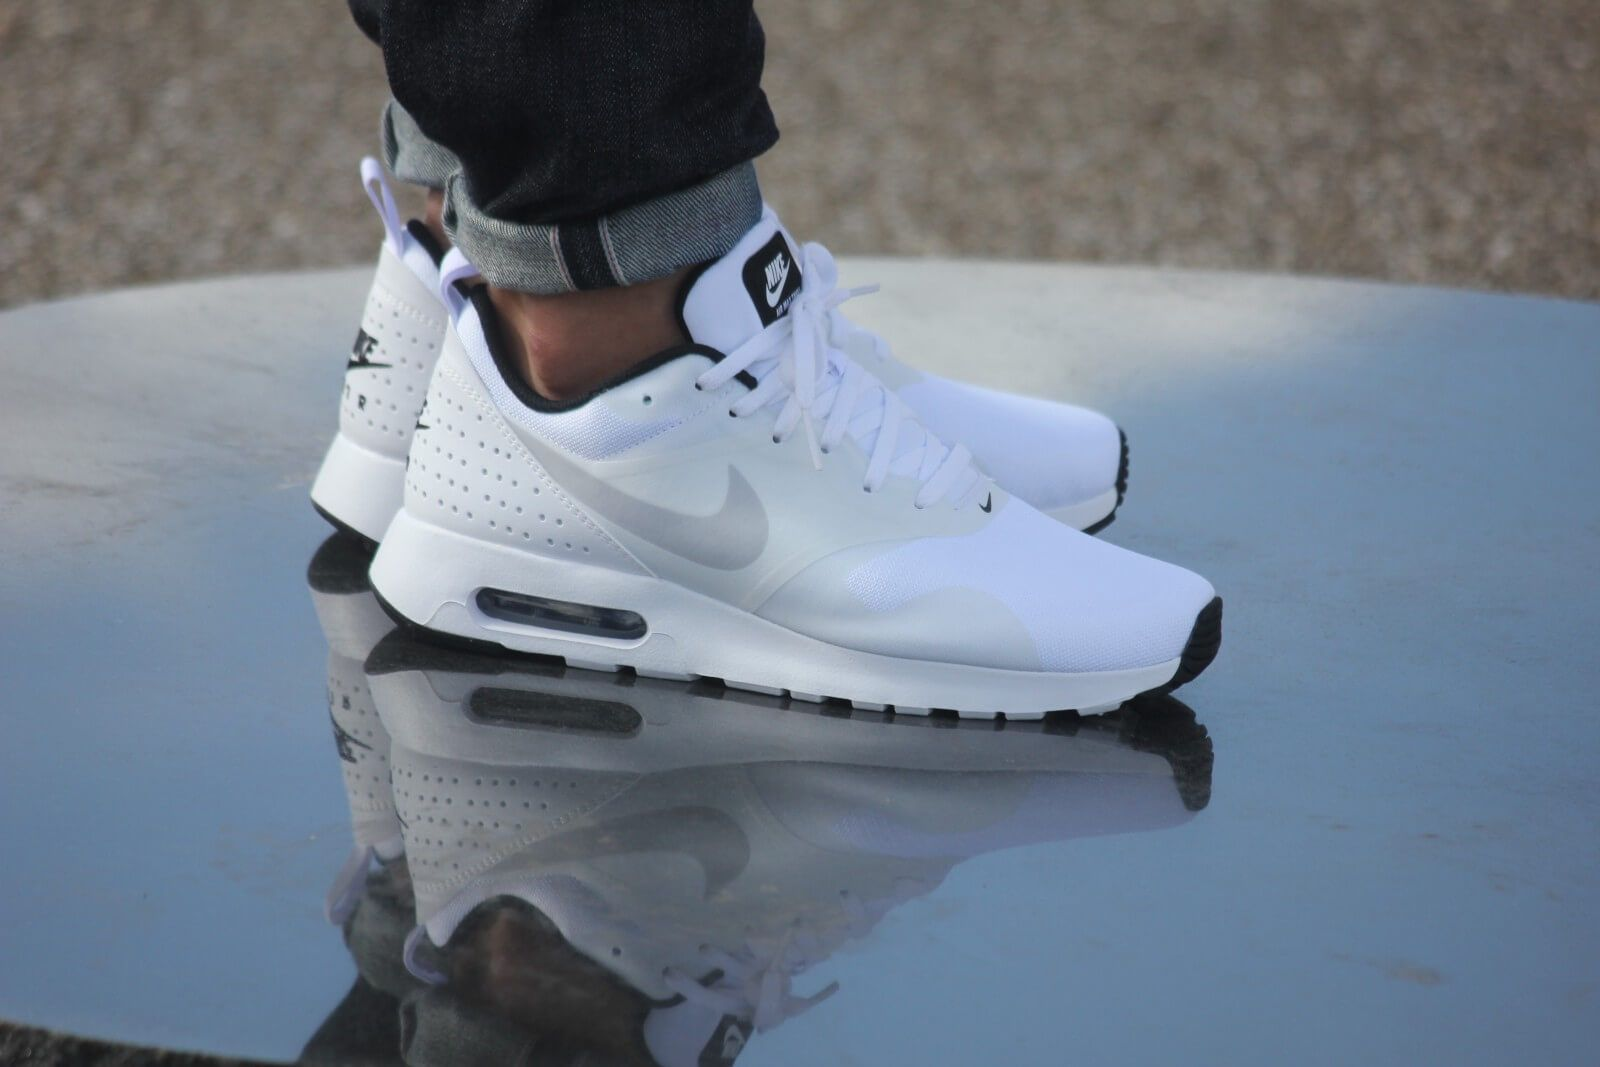 ae6f0fabf1bed8 Nike Air Max Tavas White  Pure Platinum Black - 705149-103